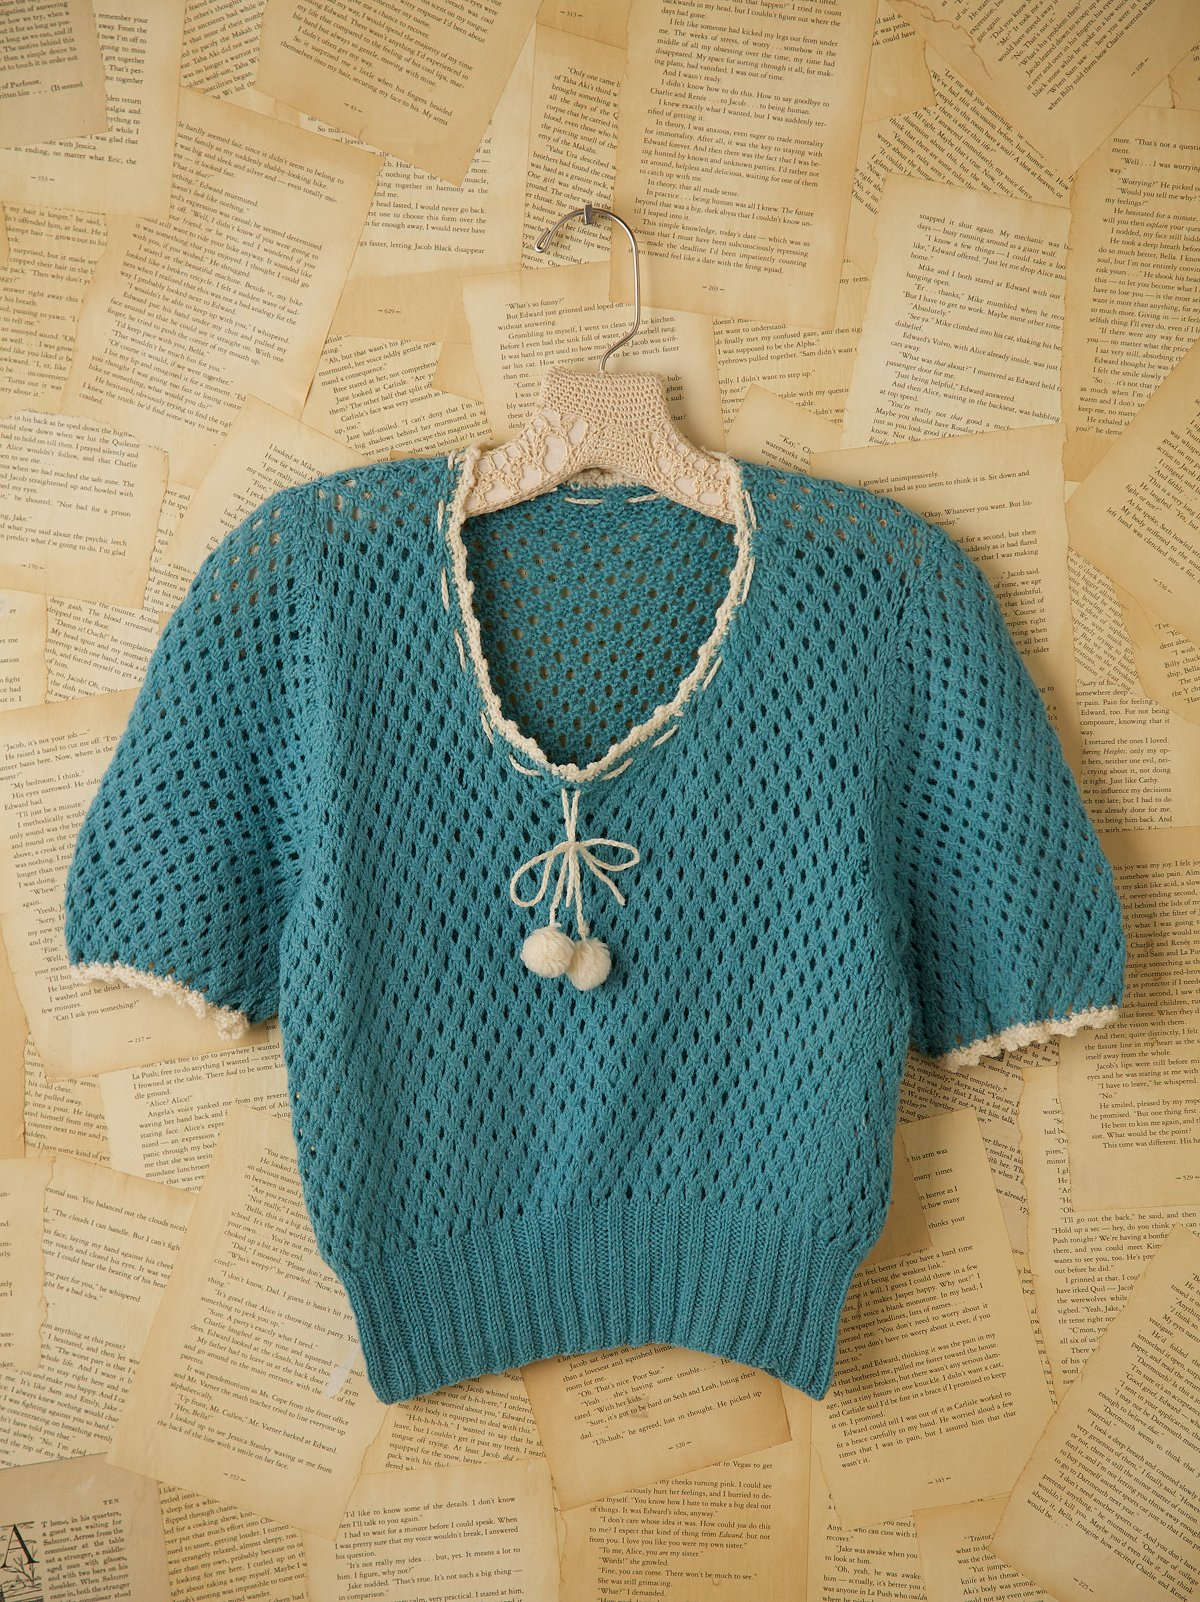 Short Sleeved Baby Blue Knit Sweater with Pom Poms